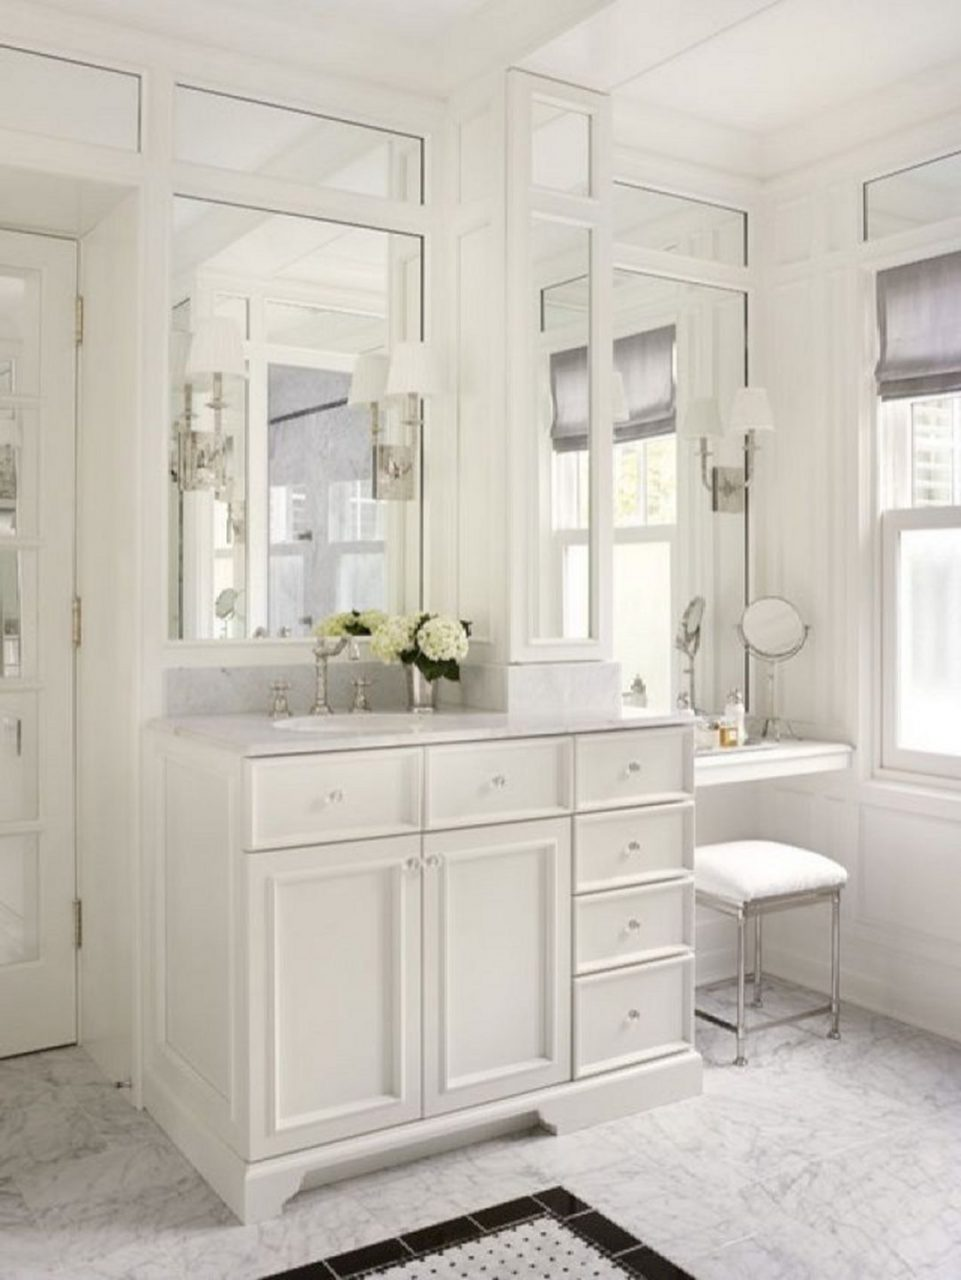 Makeup Vanities Design 43 New House Bathroom With Makeup Vanity